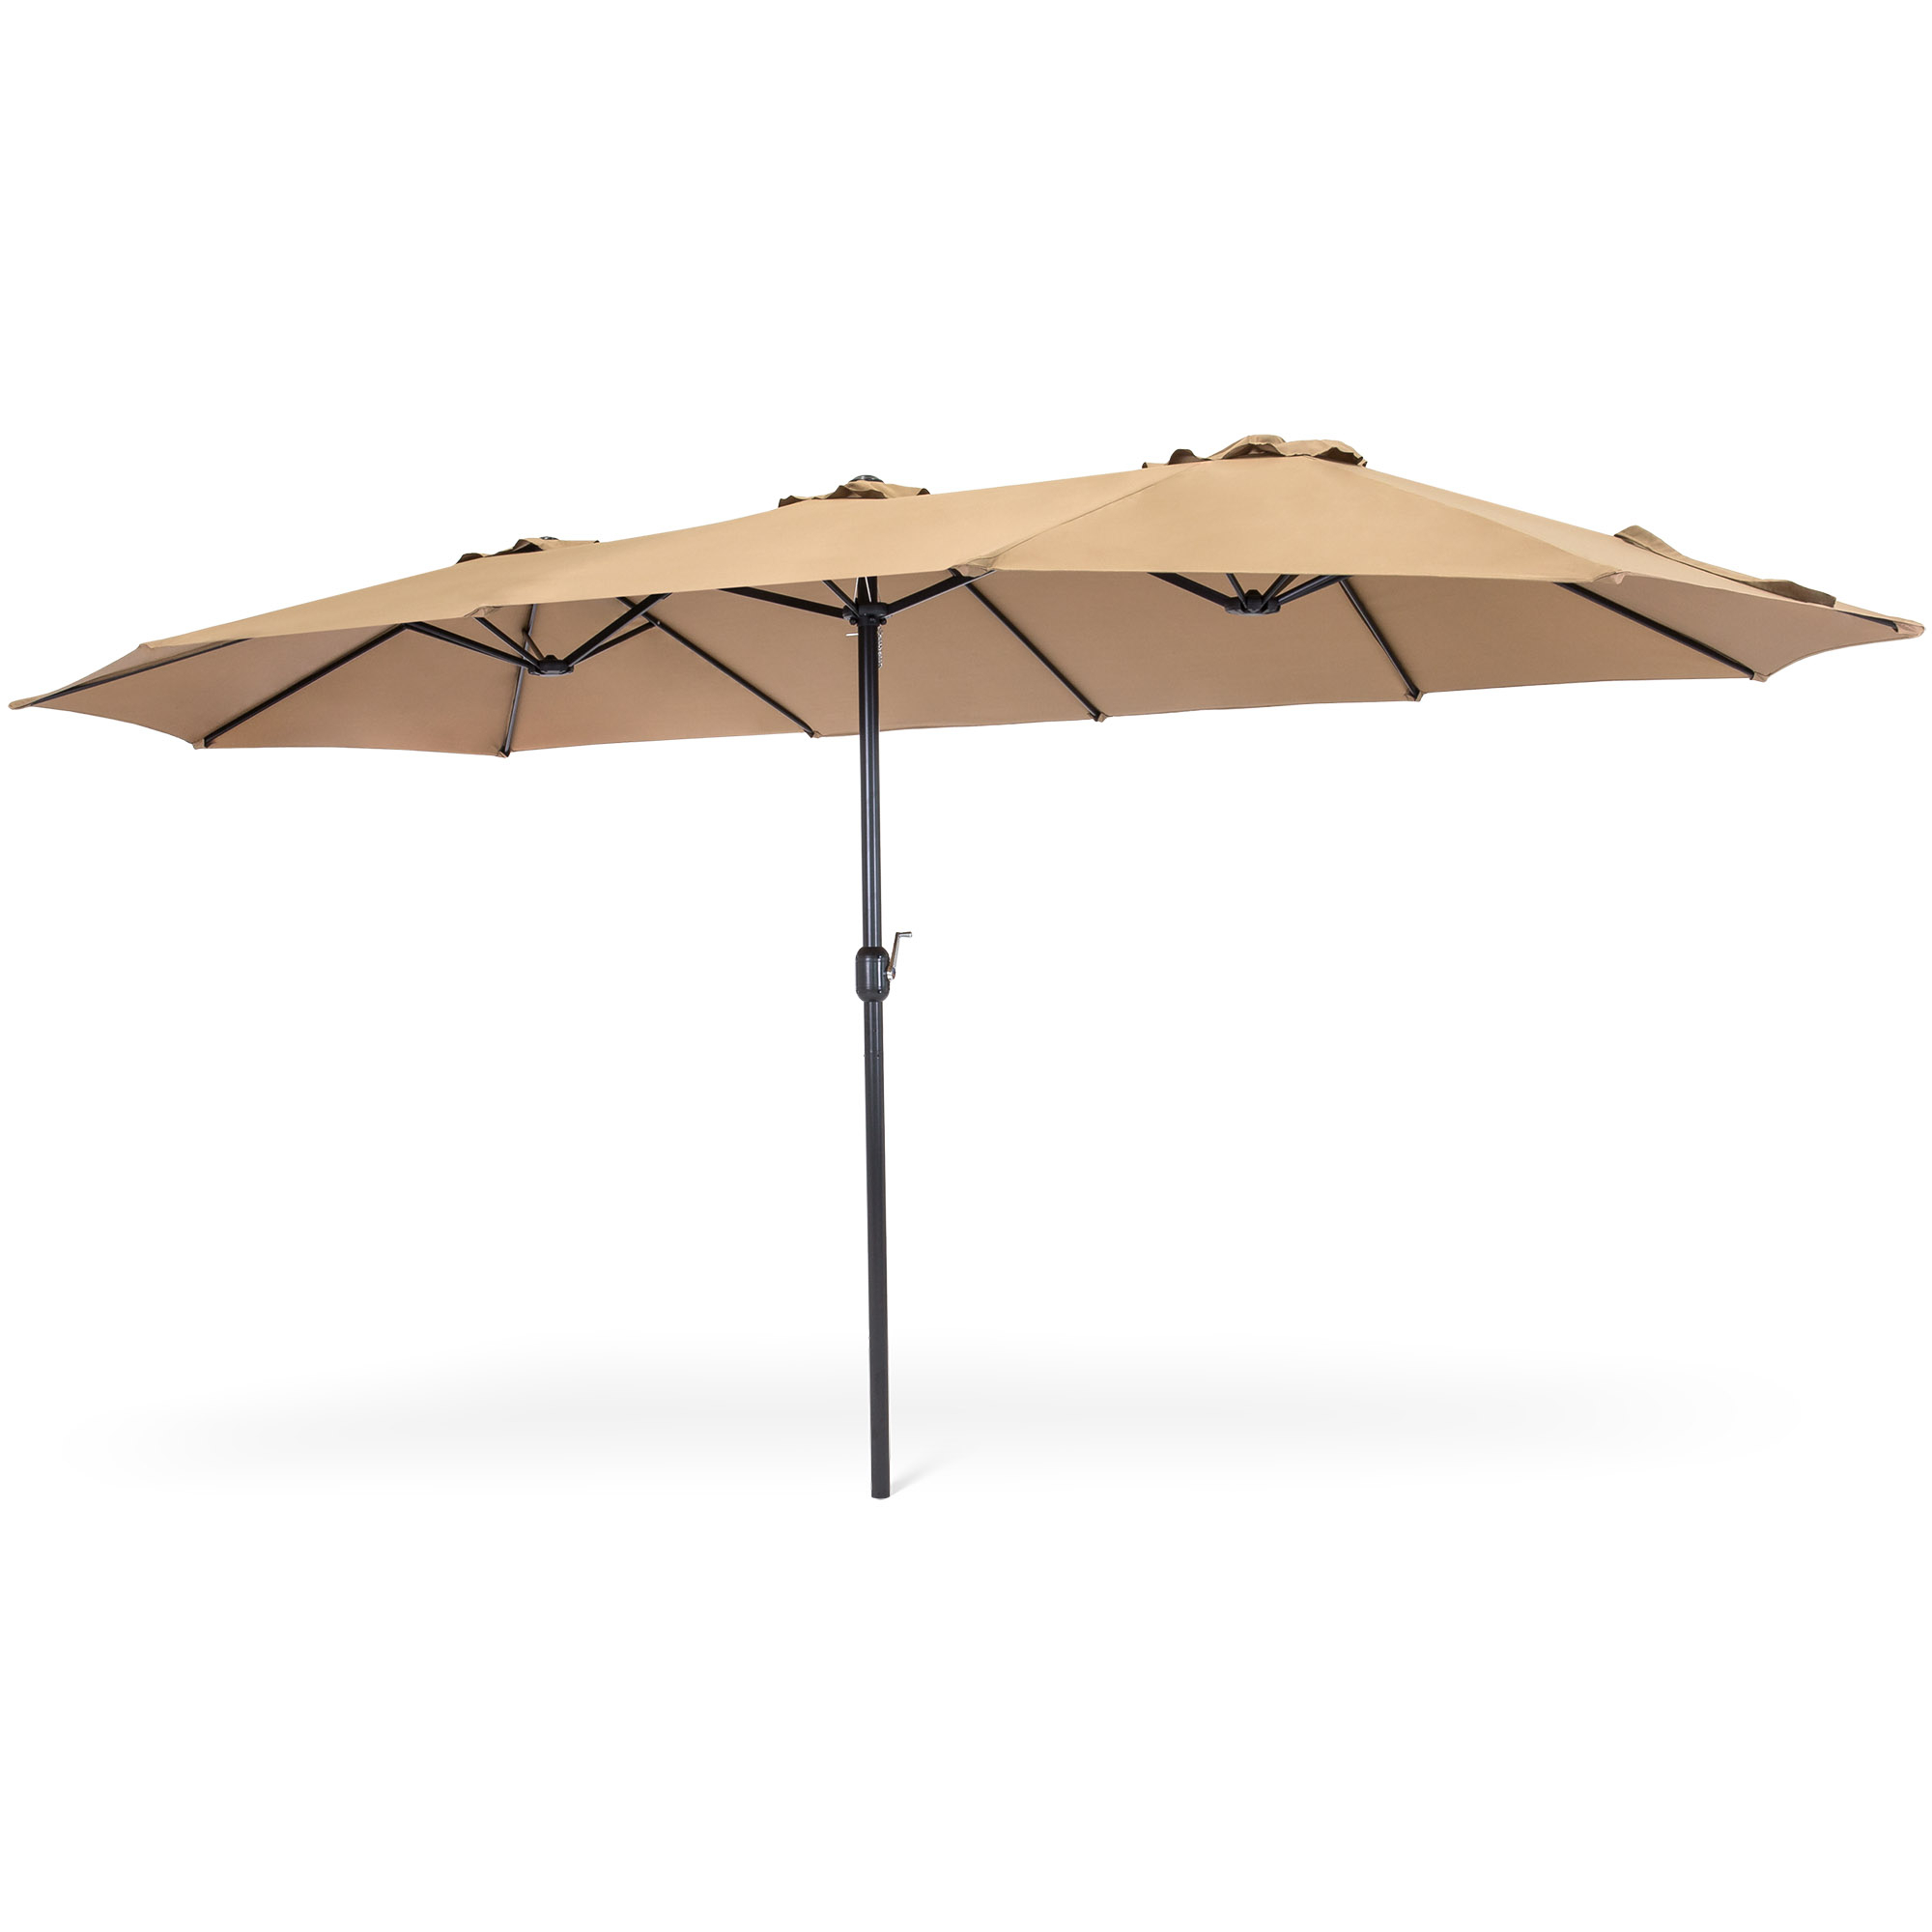 Most Up To Date Solid Rectangular Market Umbrellas With Best Choice Products 15X9Ft Large Rectangular Outdoor Aluminum Twin Patio  Market Umbrella W/ Crank, Wind Vents – Beige (View 6 of 20)